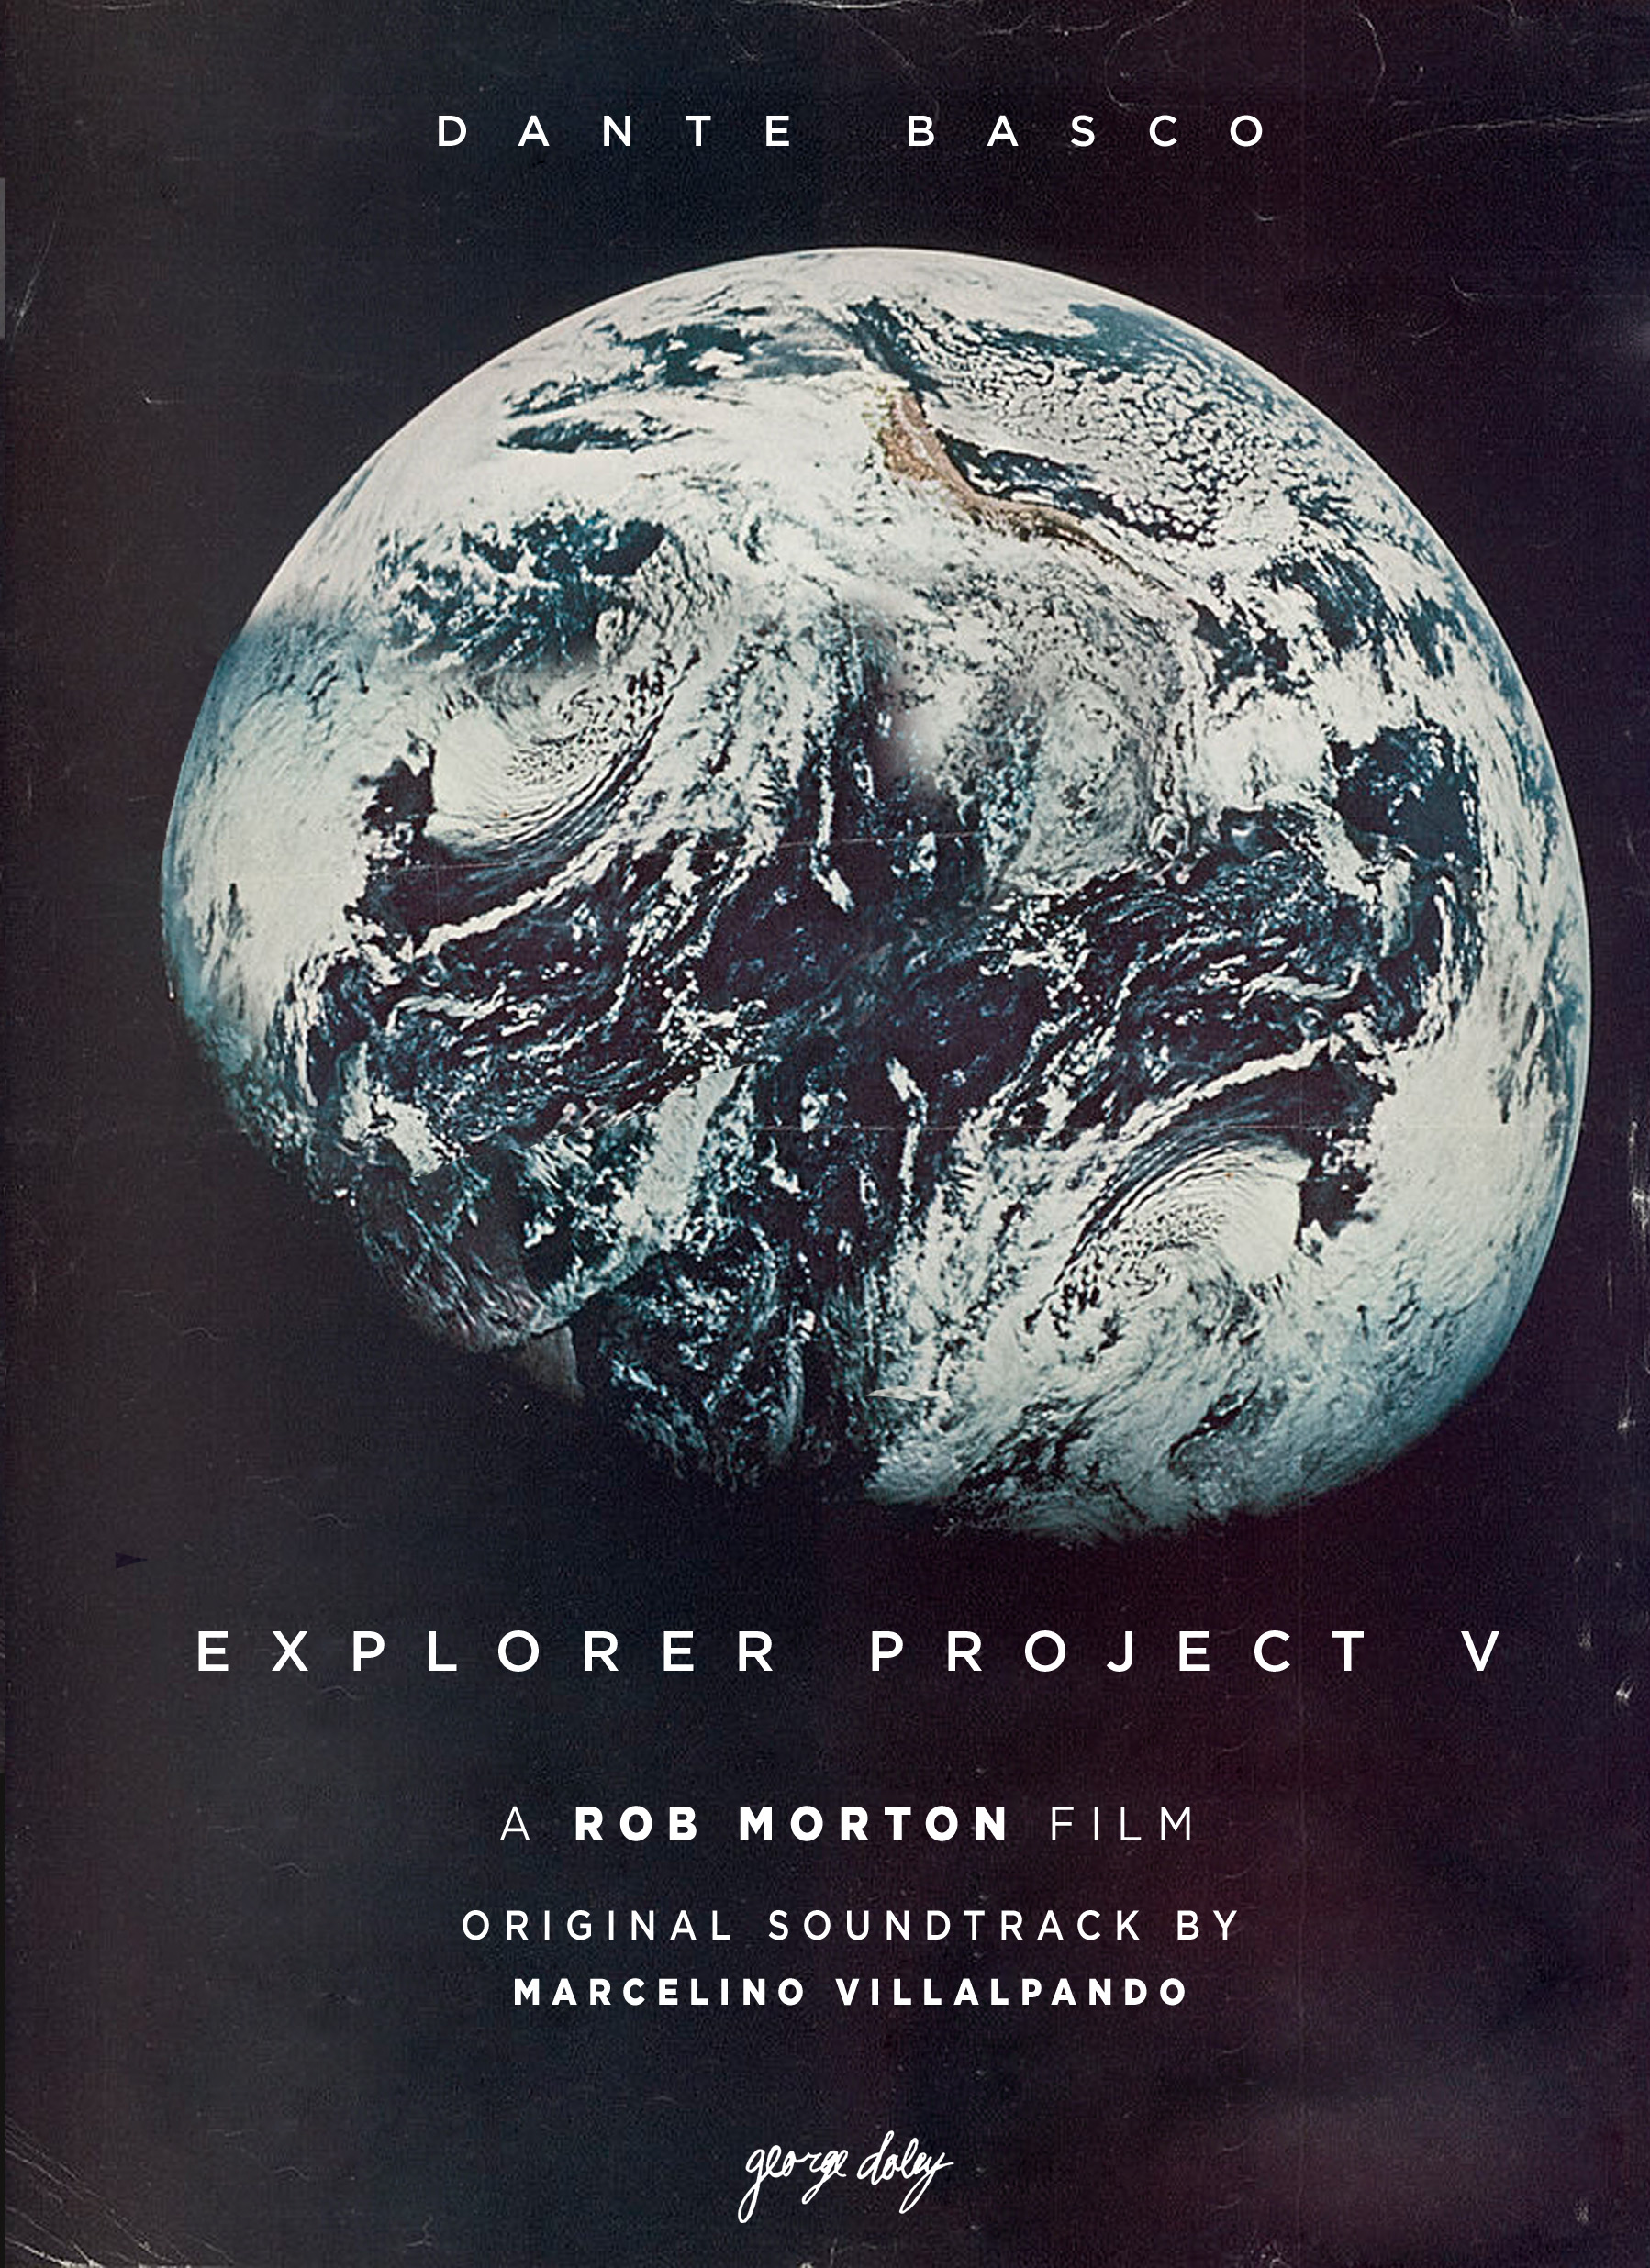 rob morton // explorer project v // short film